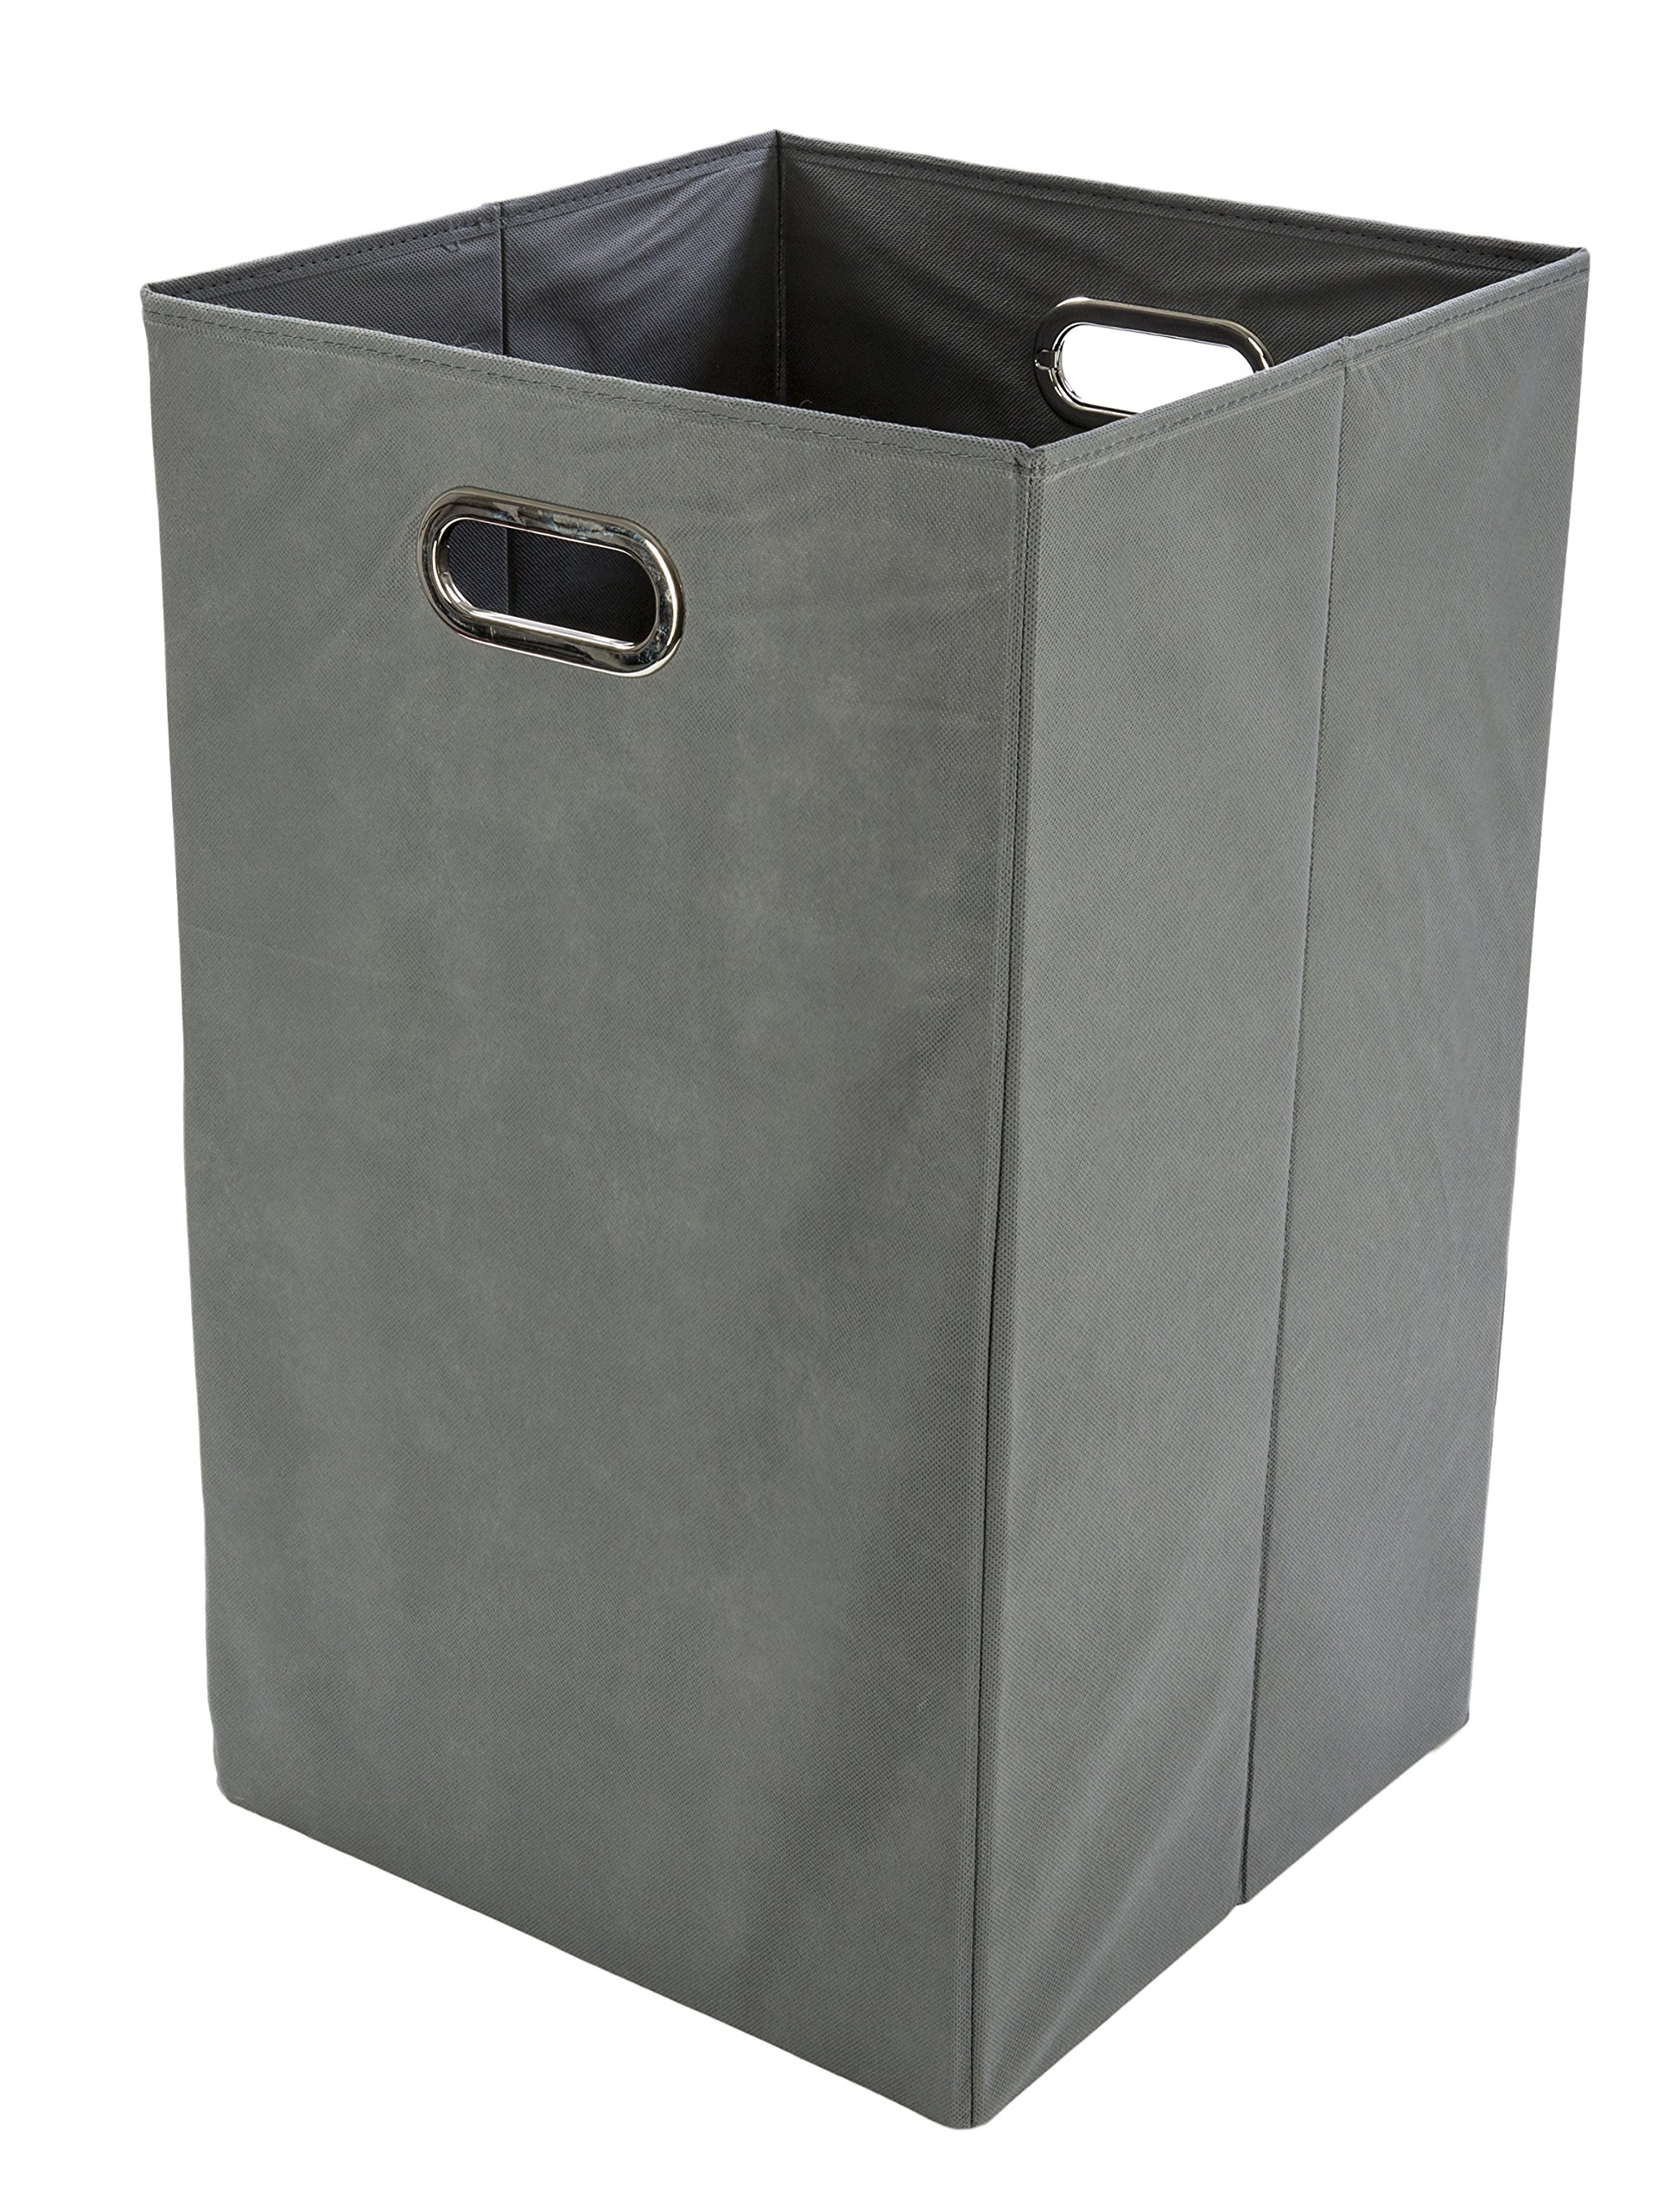 Modern Littles Folding Laundry Basket, Grey - Collapsible Laundry Bin for Toys - Bedroom Organizer - Foldable Bin with Large Capacity. Adult and Kids Room Décor